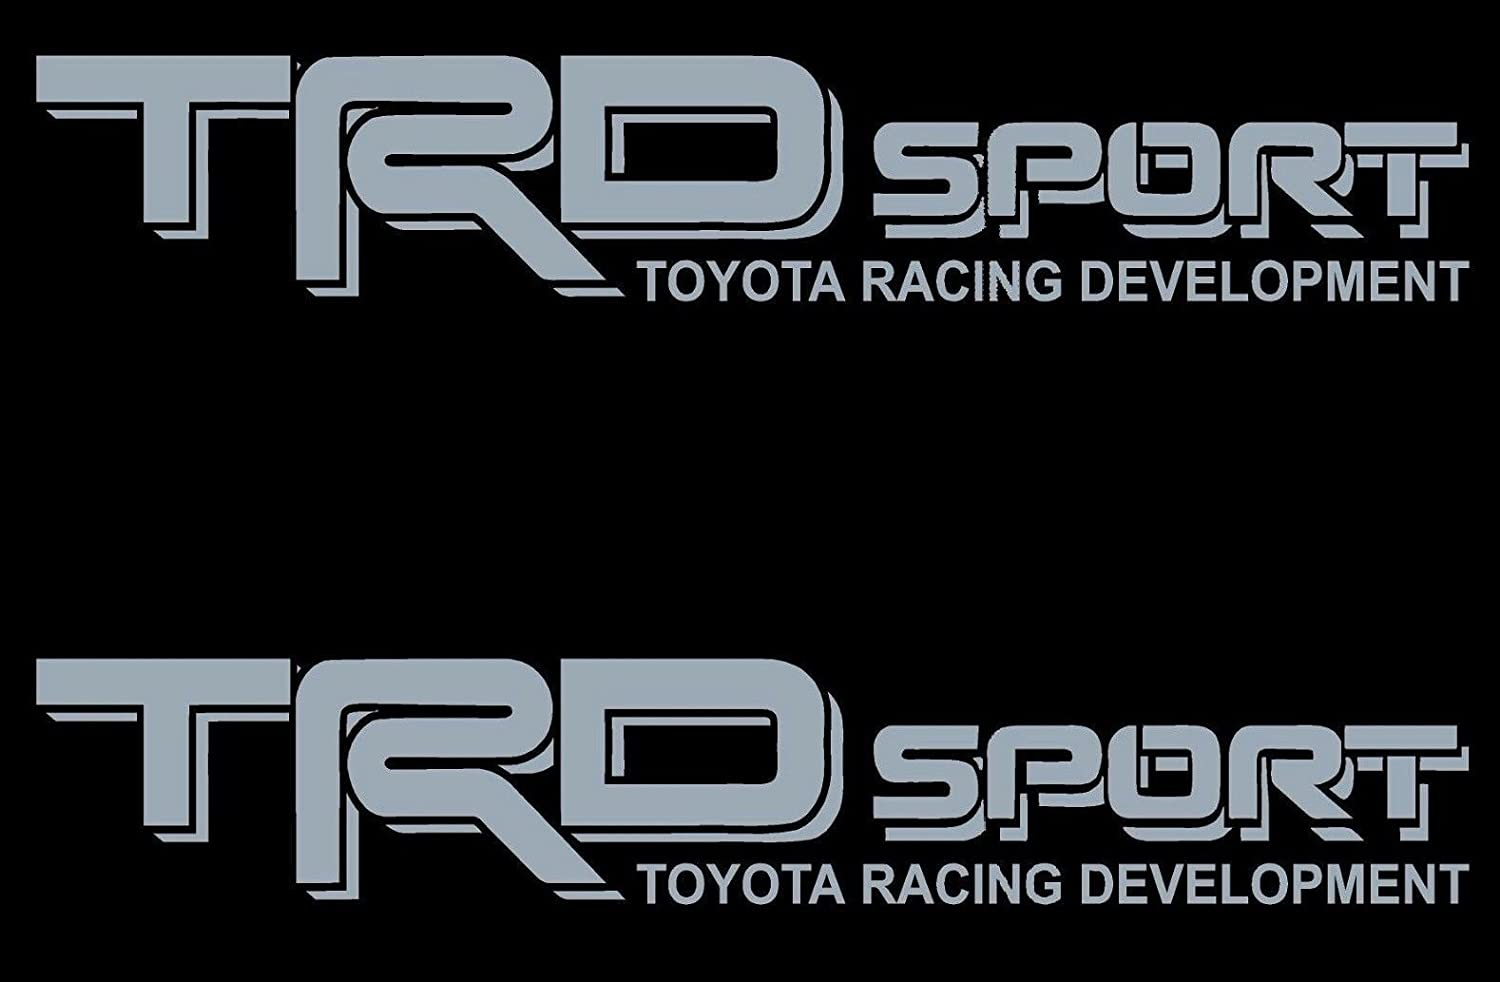 US Fast Ship New TRD SPORT Black Gray Wording Decals Vinyl Stickers Graphics Letters Side Toyota Tacoma 4x4 Racing Development Pickup Truck Auto Car Compatible Use Tstick